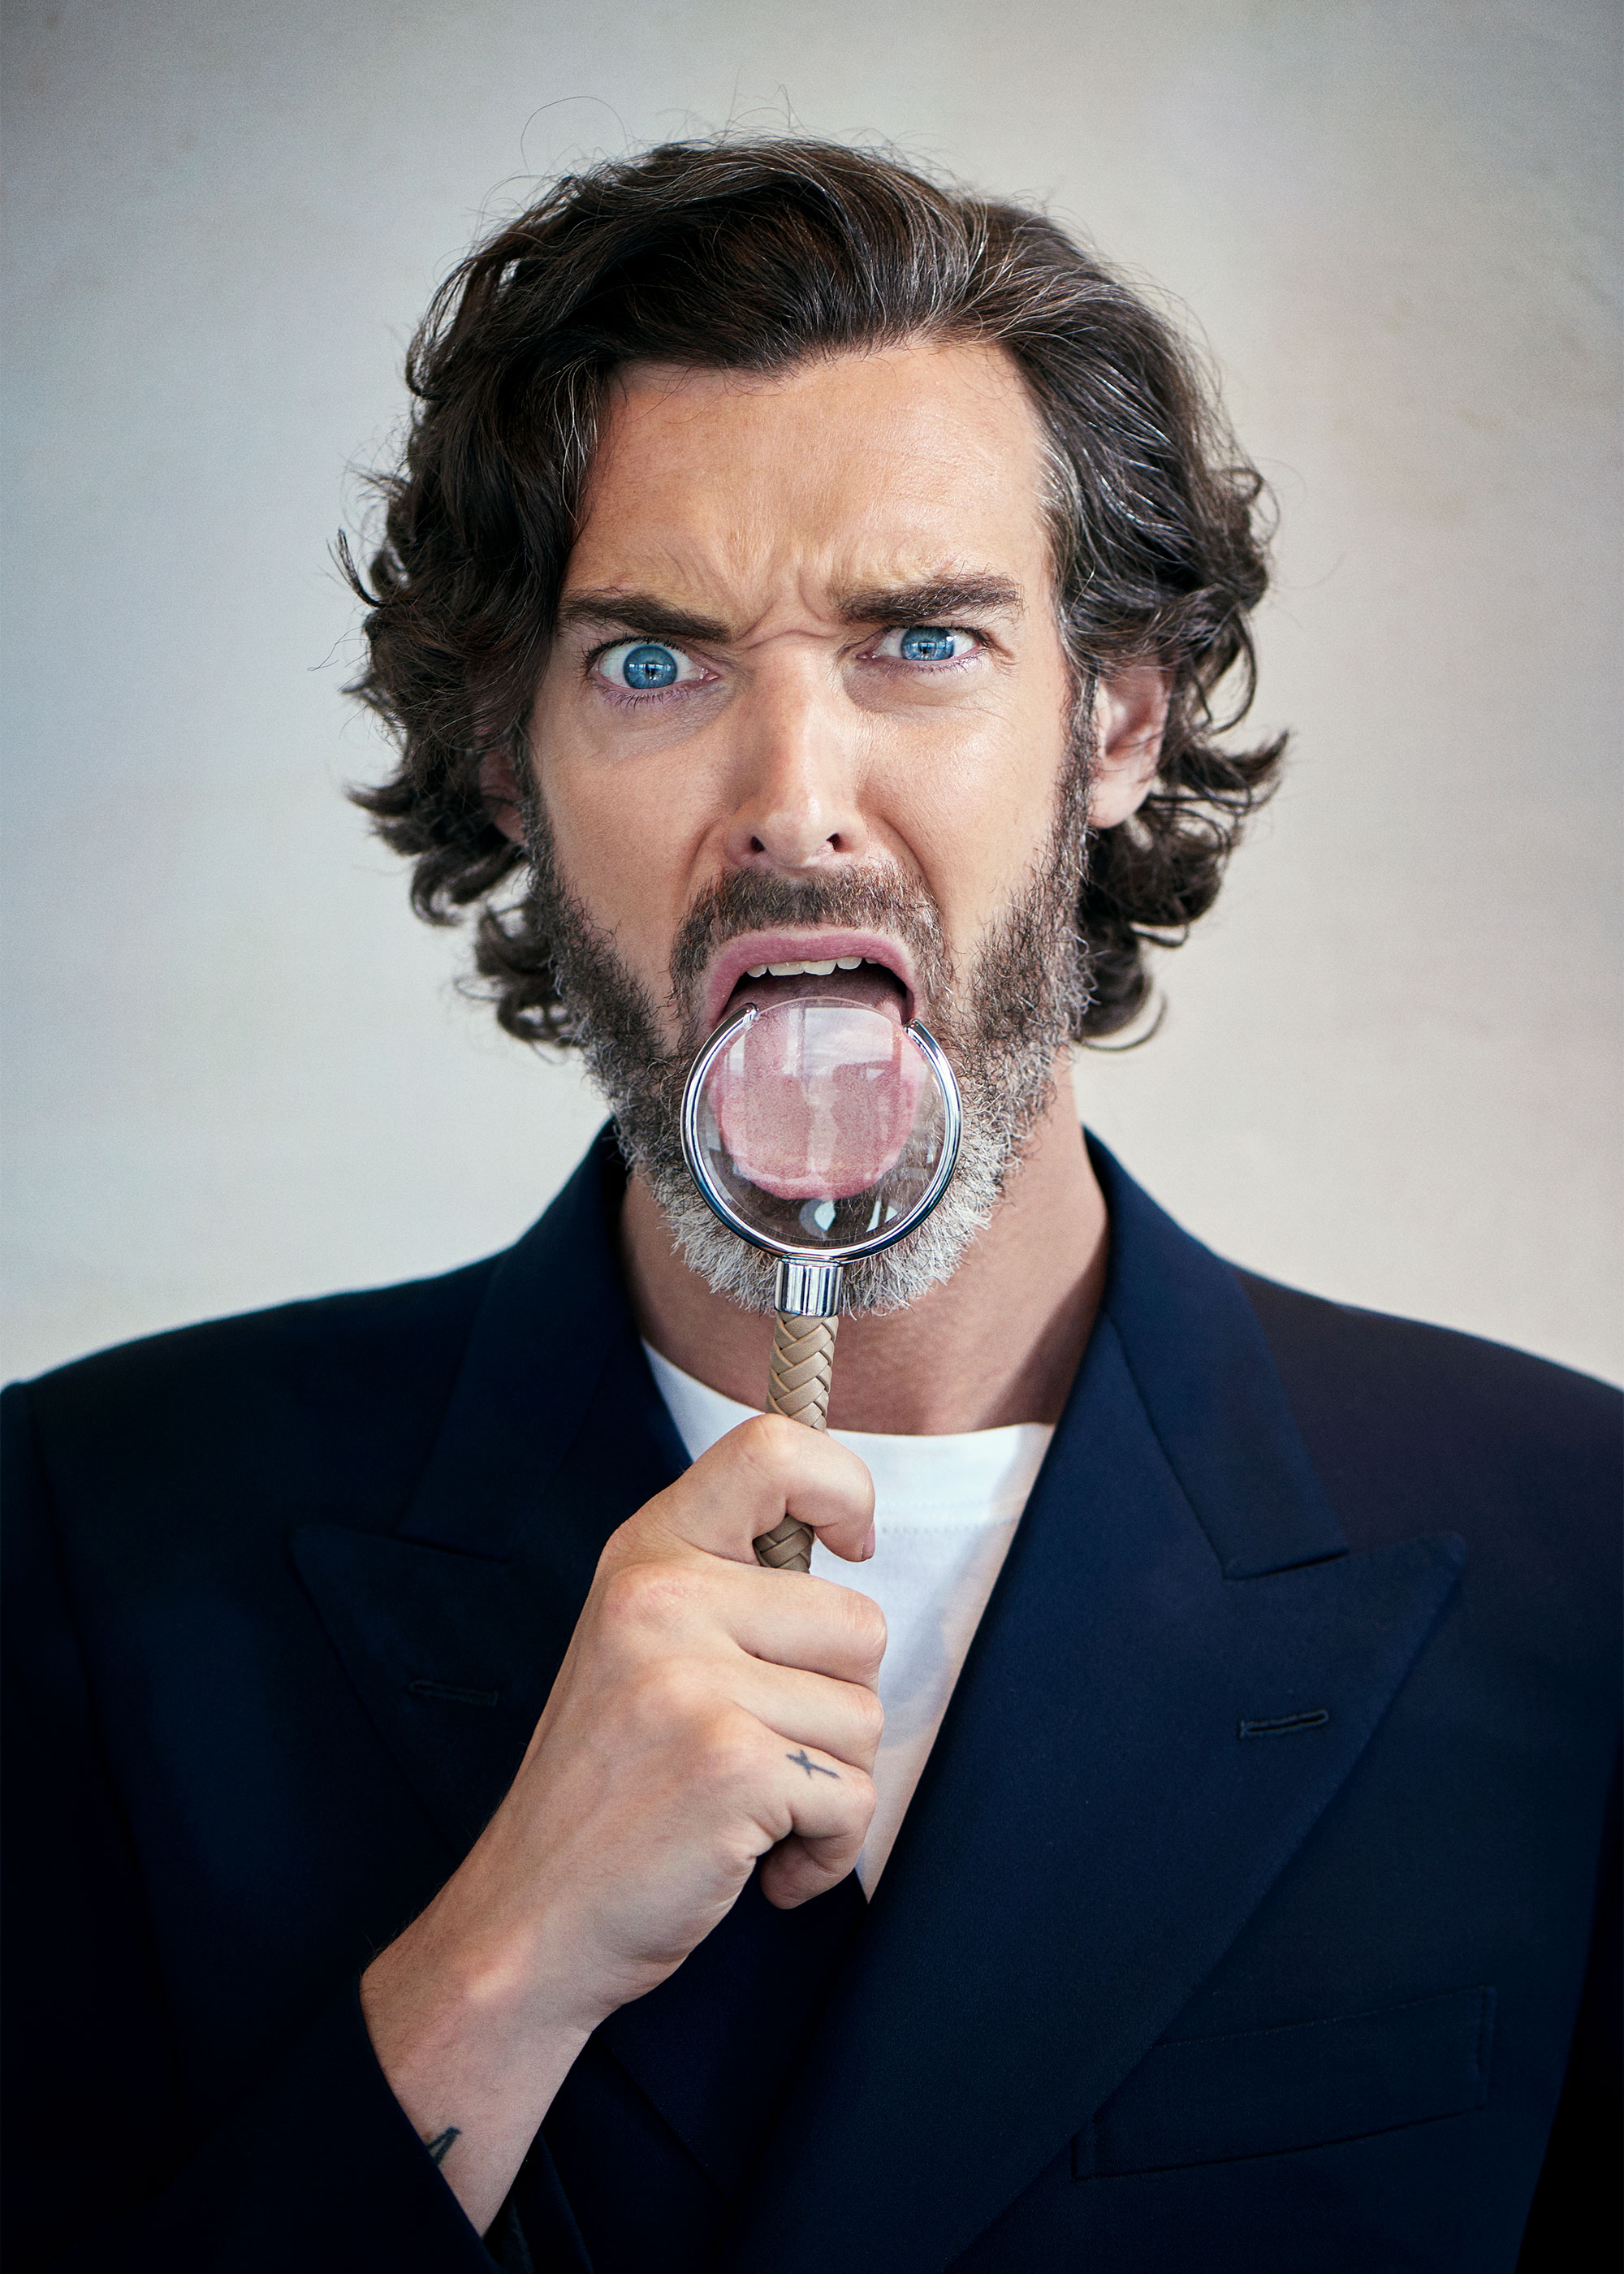 Richard-Biedul-magazine-cover-licking-glass-sane-seven-2000px-wide-